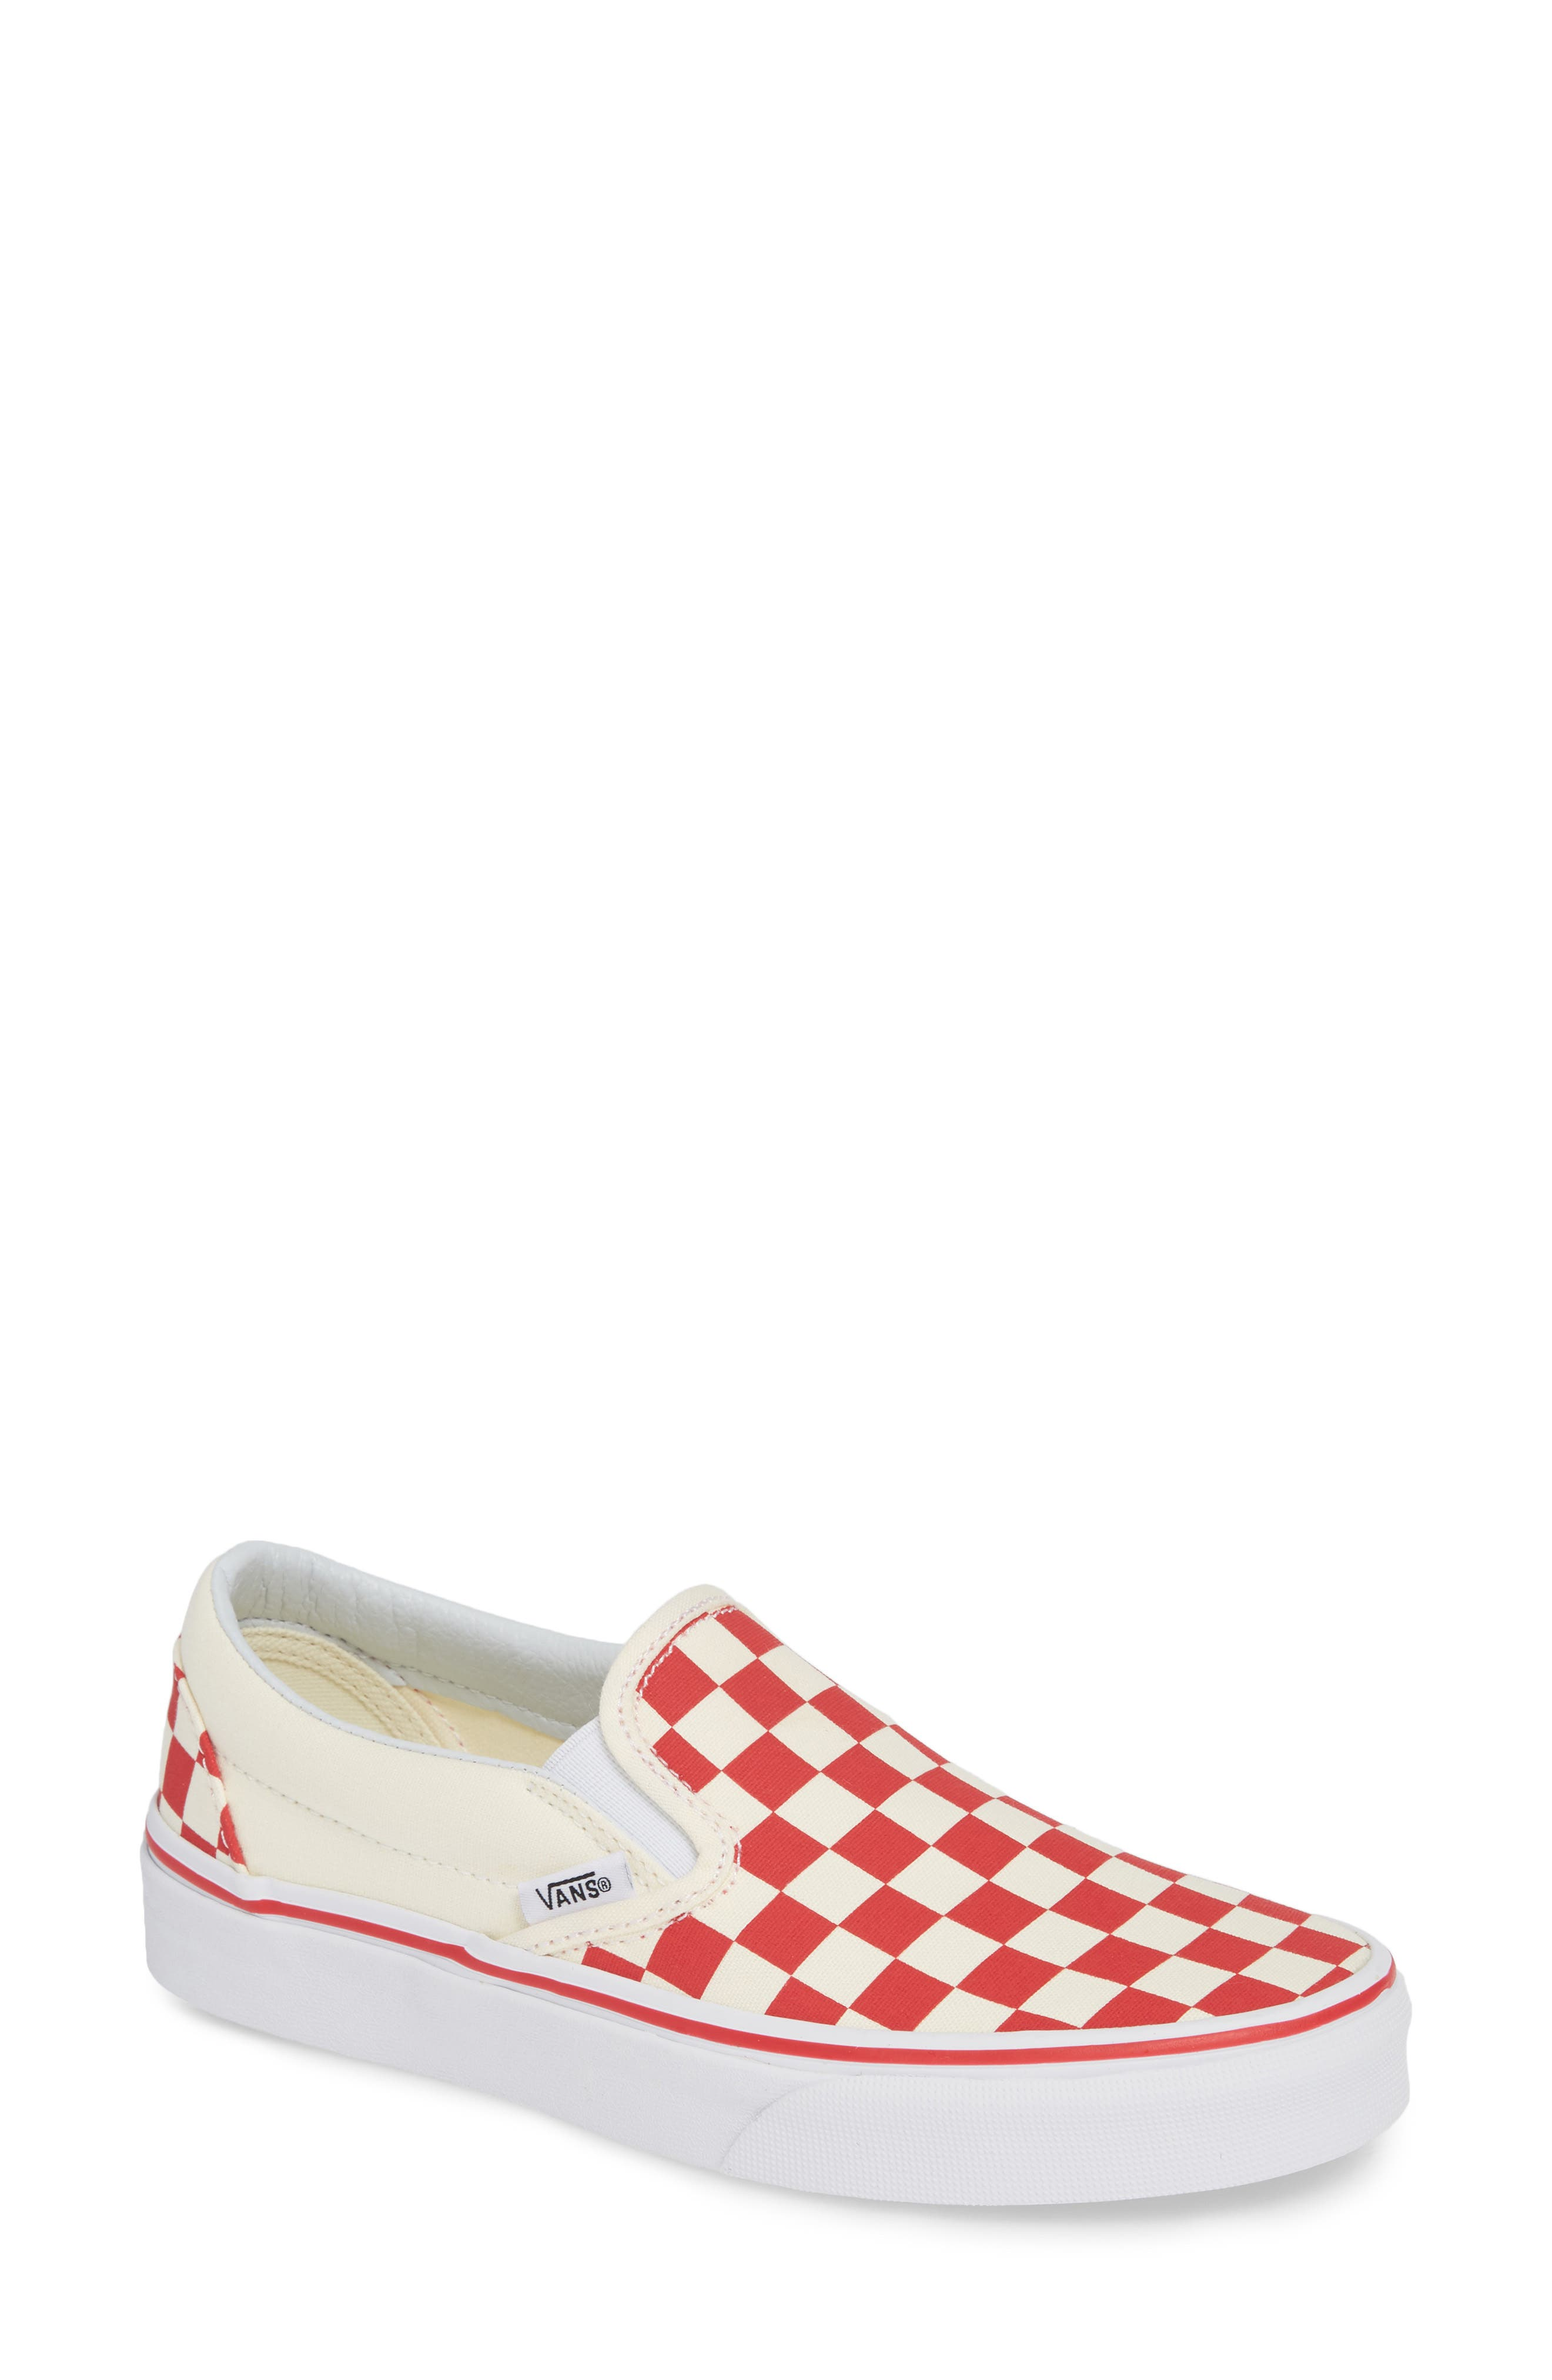 'Classic' Slip-On,                         Main,                         color, RACING RED/ WHITE